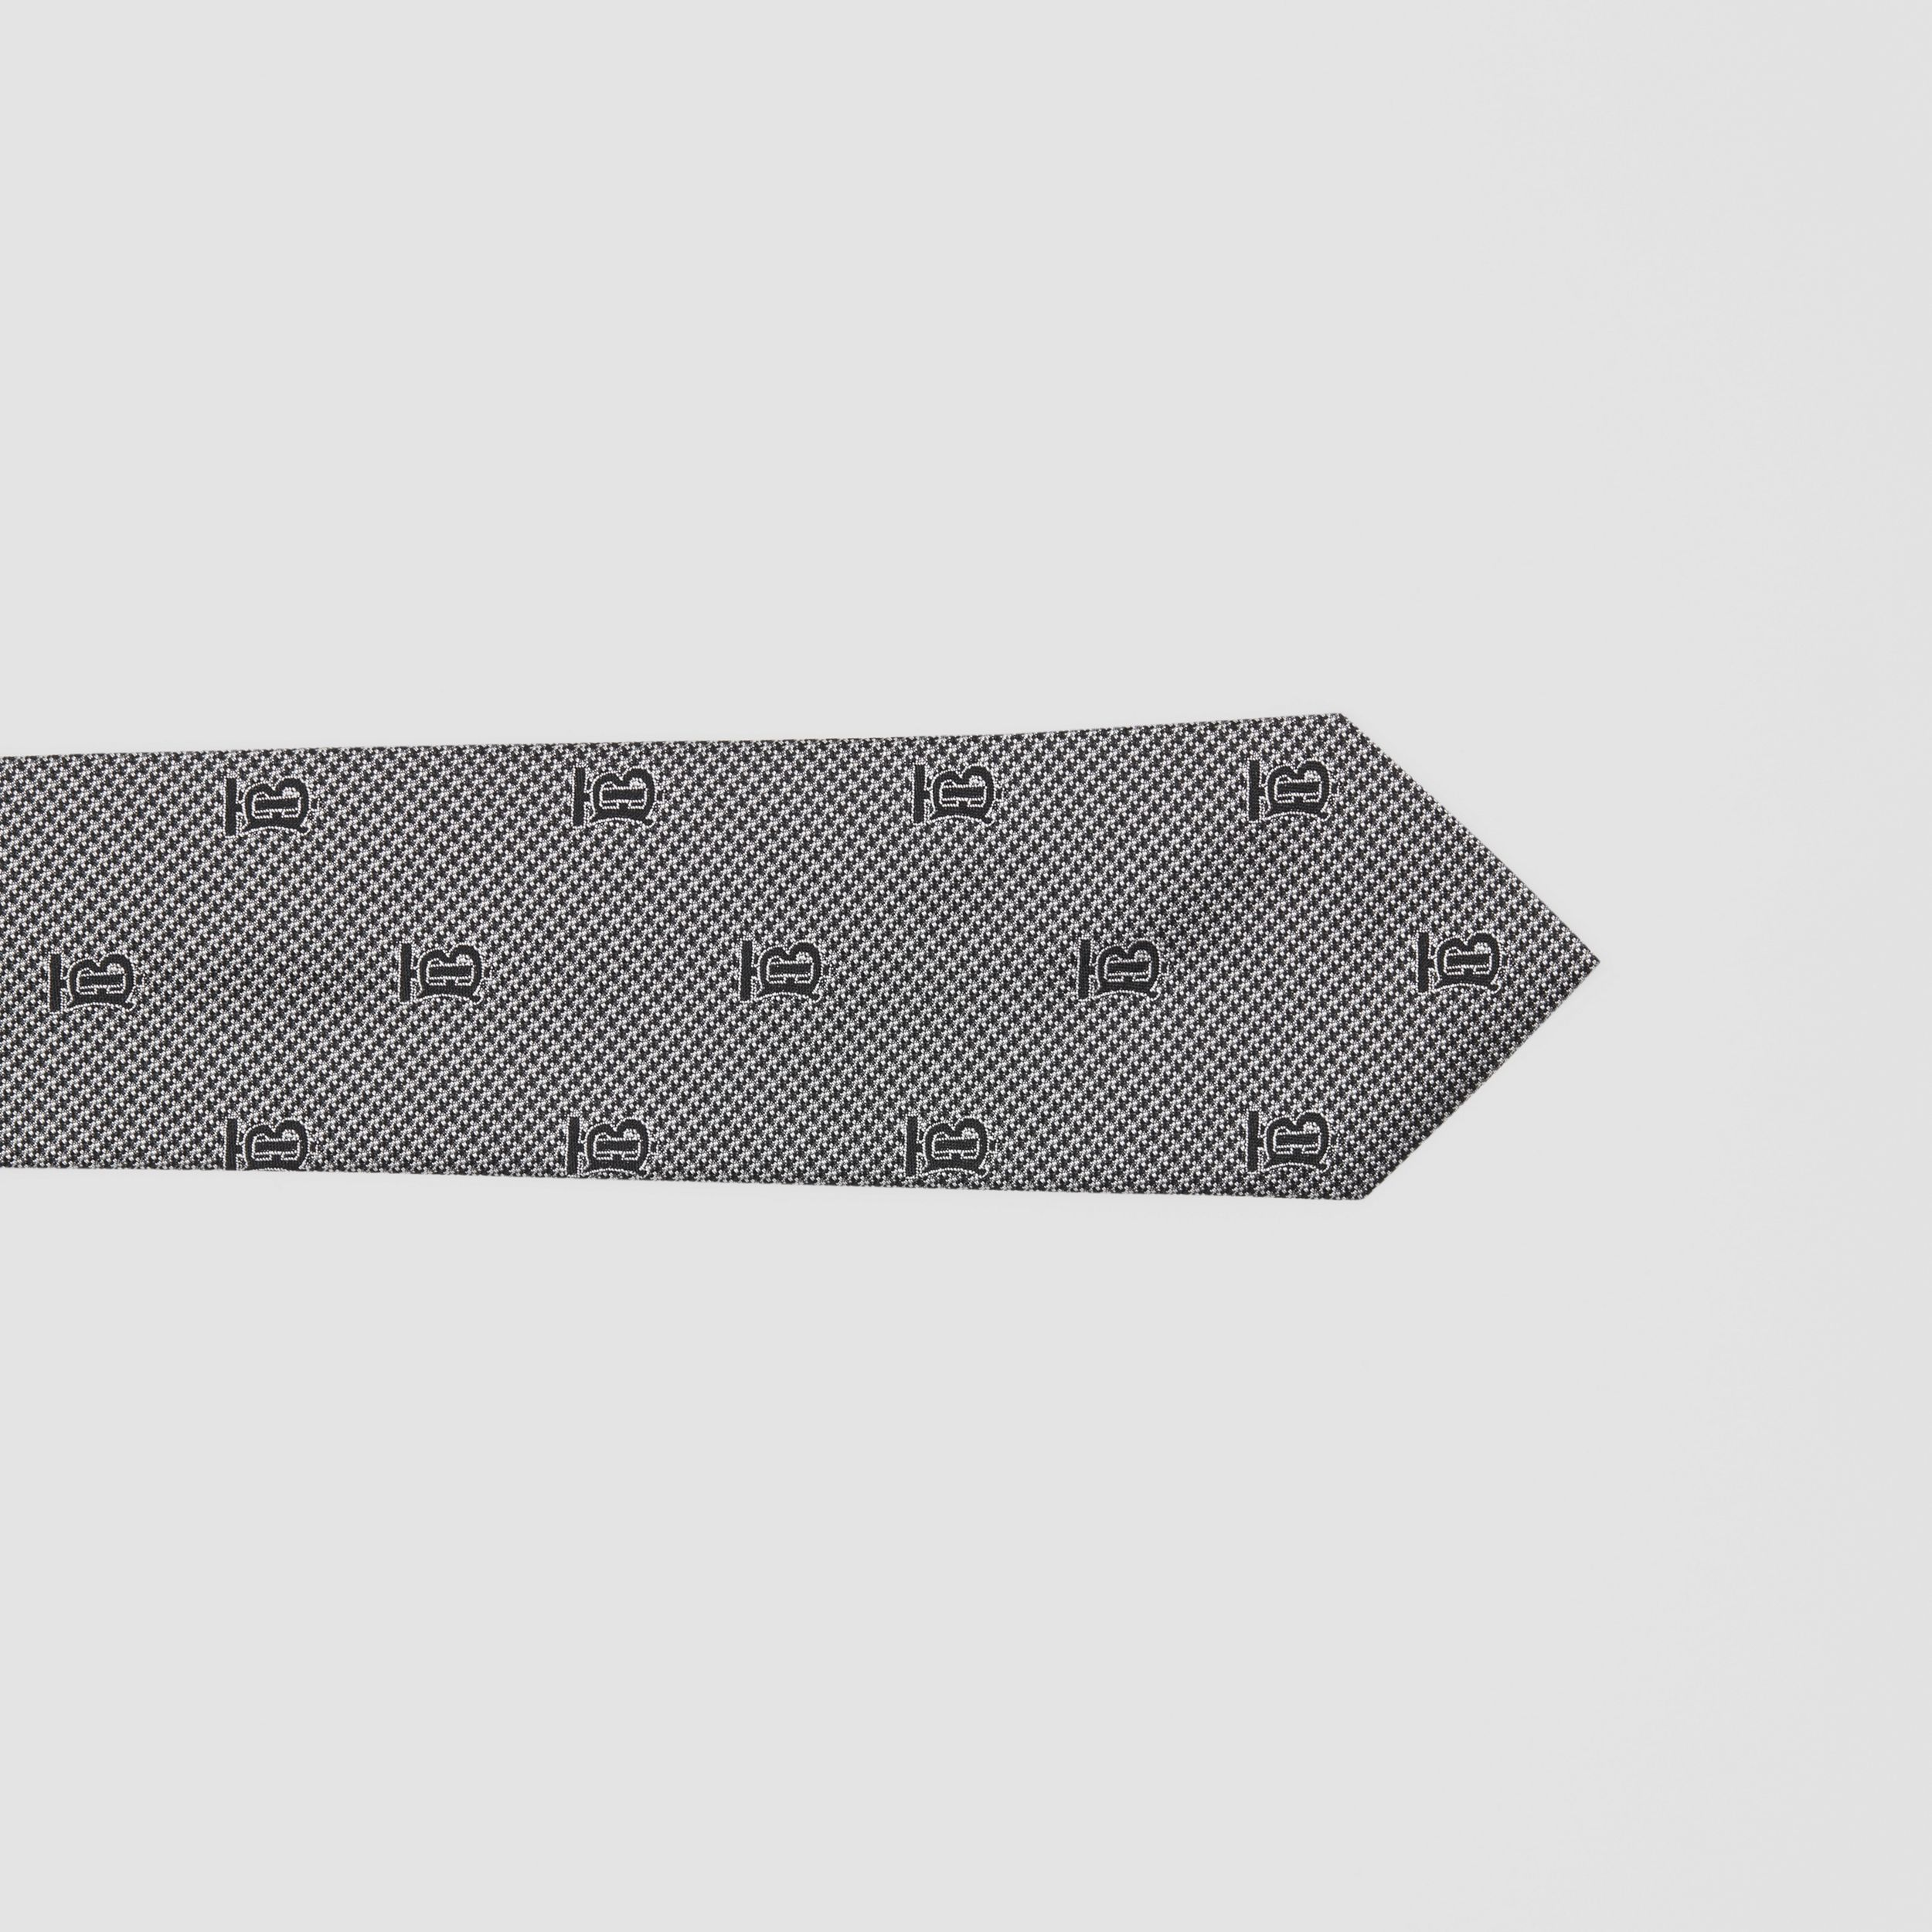 Classic Cut Puppytooth Check Silk Tie in Pearl Grey - Men | Burberry United Kingdom - 2